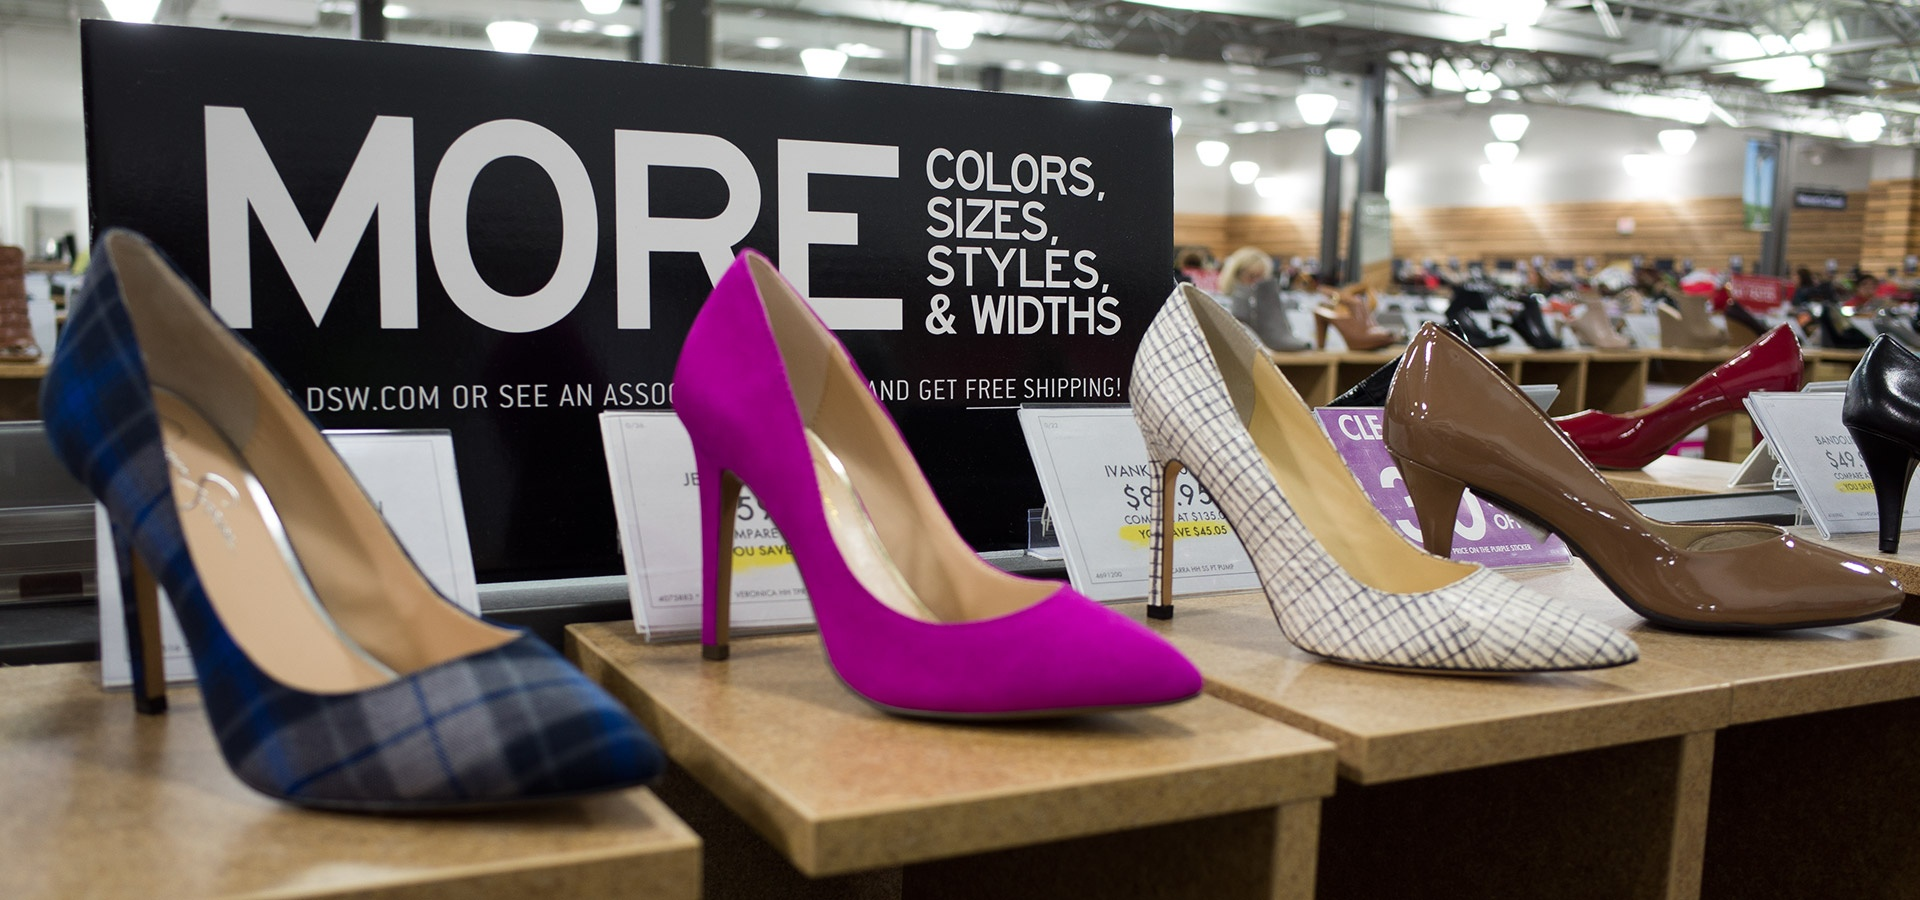 $20 Off } Dsw Coupon Code February 2019 ~ Dsw Promo Code Reddit - Free Printable Coupons For Dsw Shoes